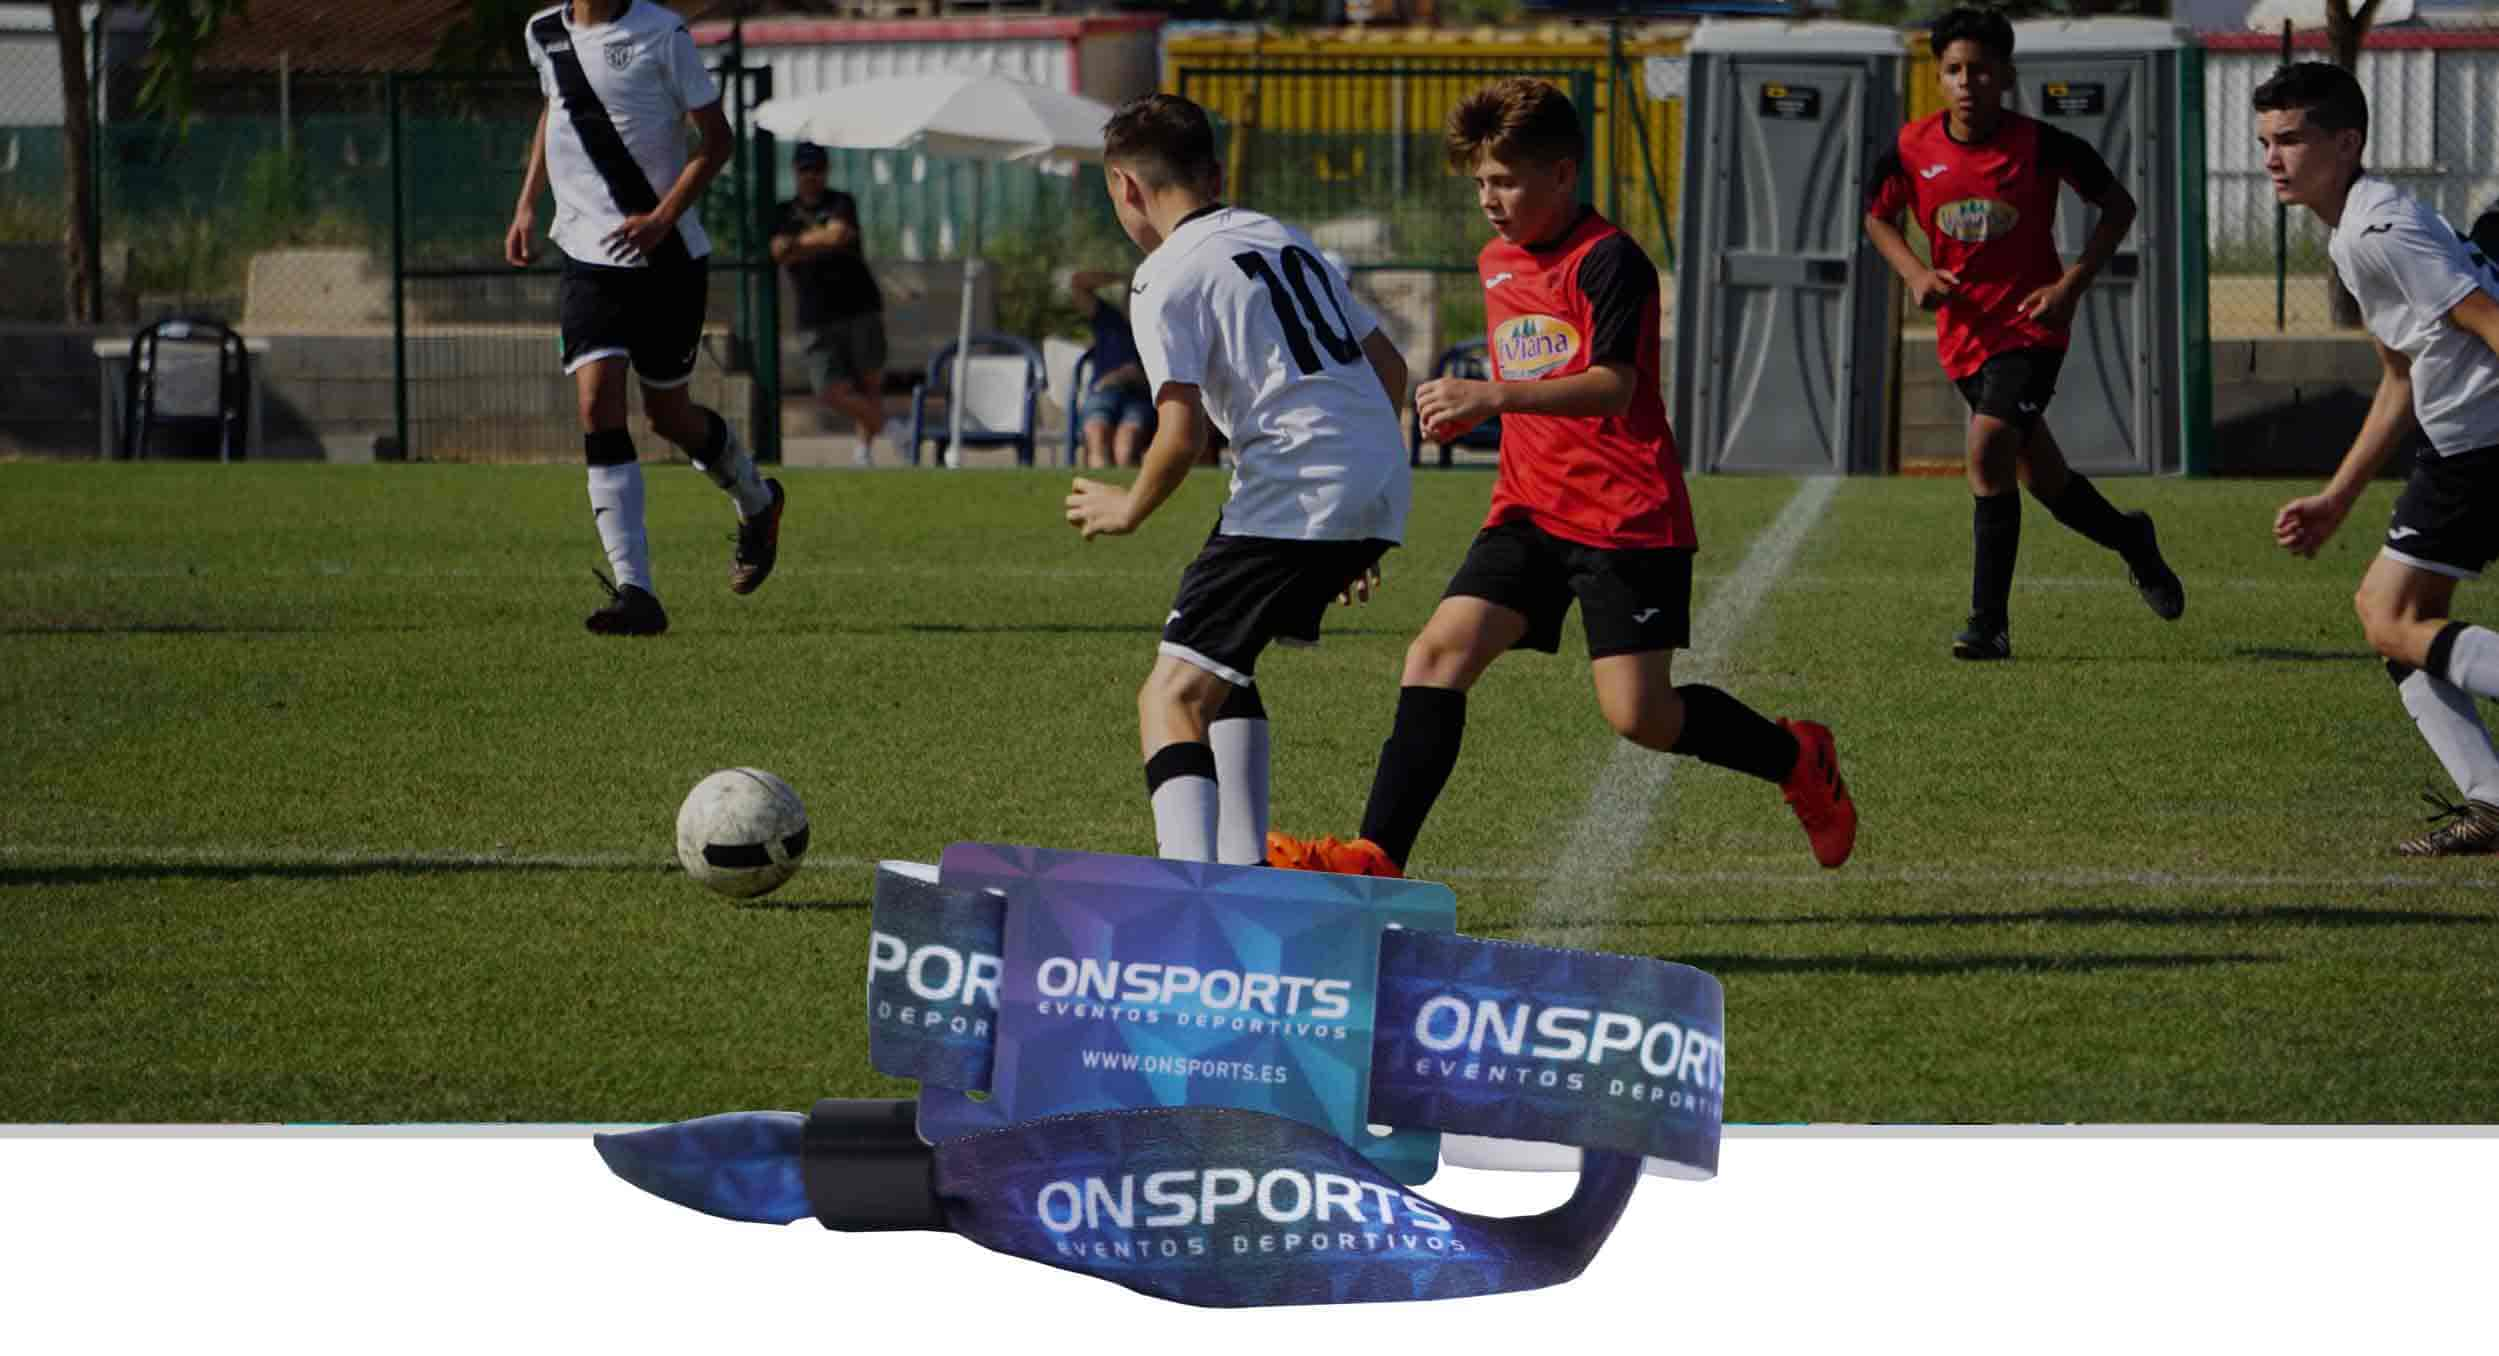 Onsports